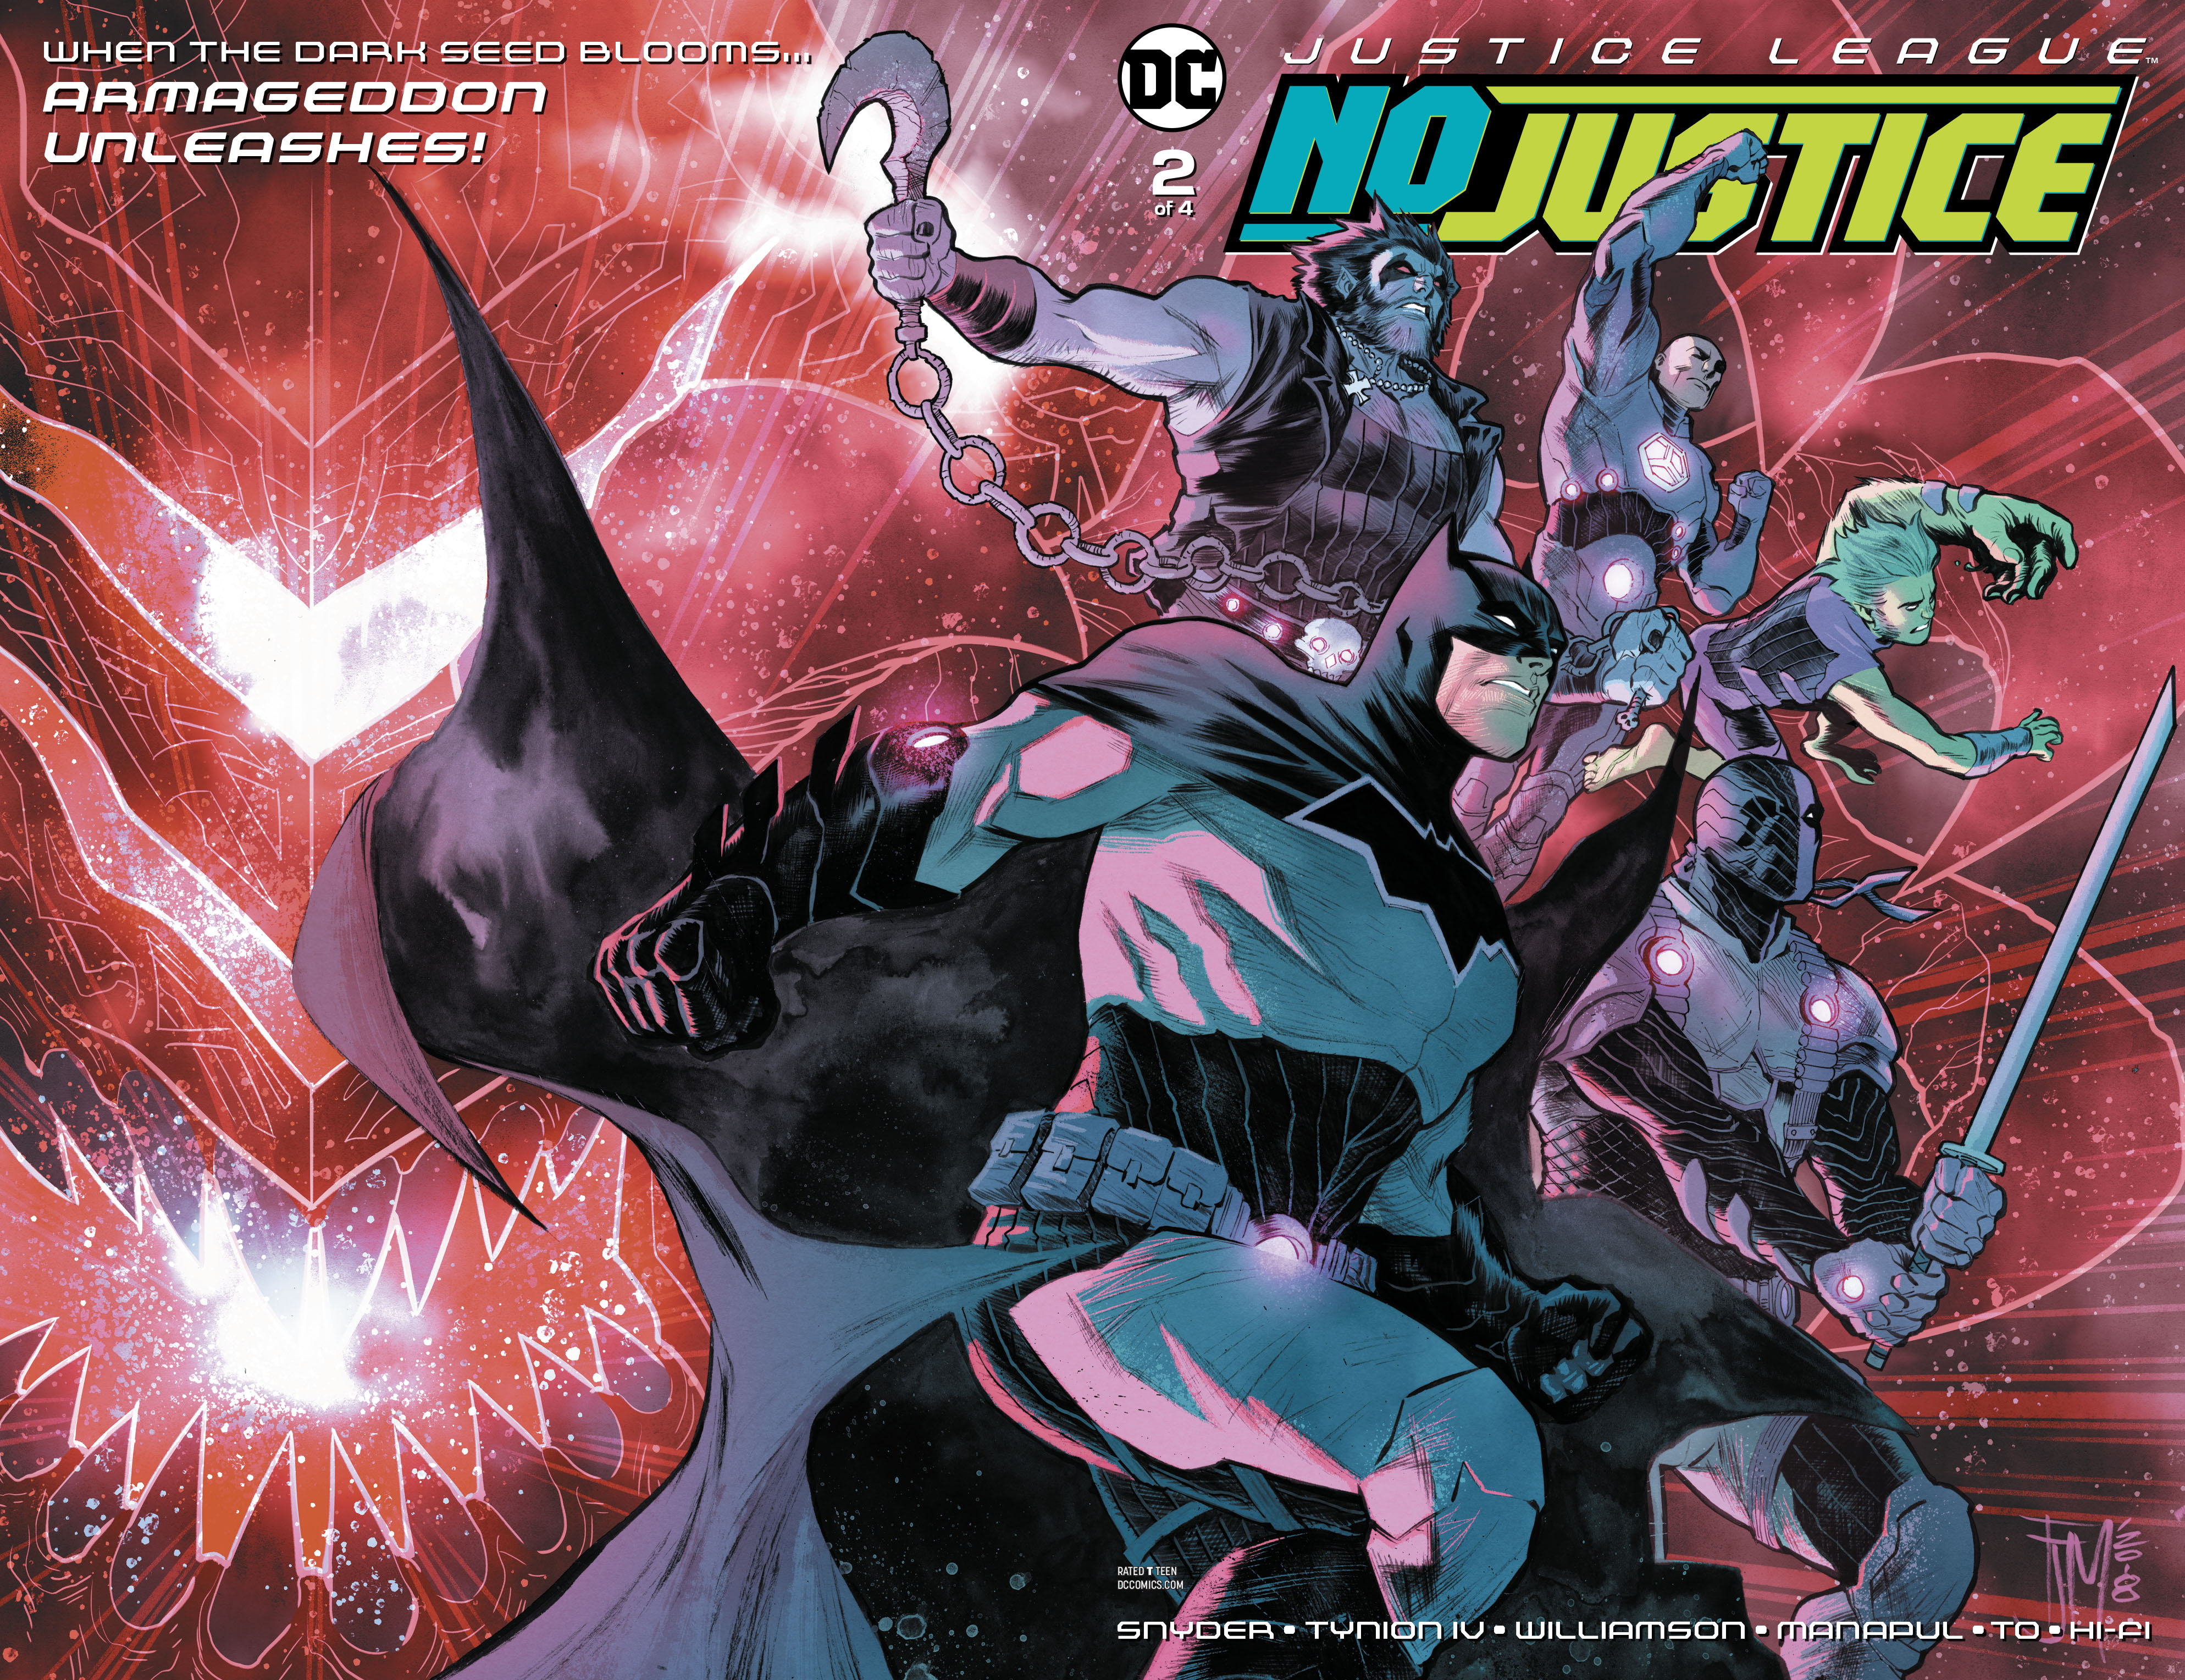 JUSTICE LEAGUE NO JUSTICE #2 (OF 4)